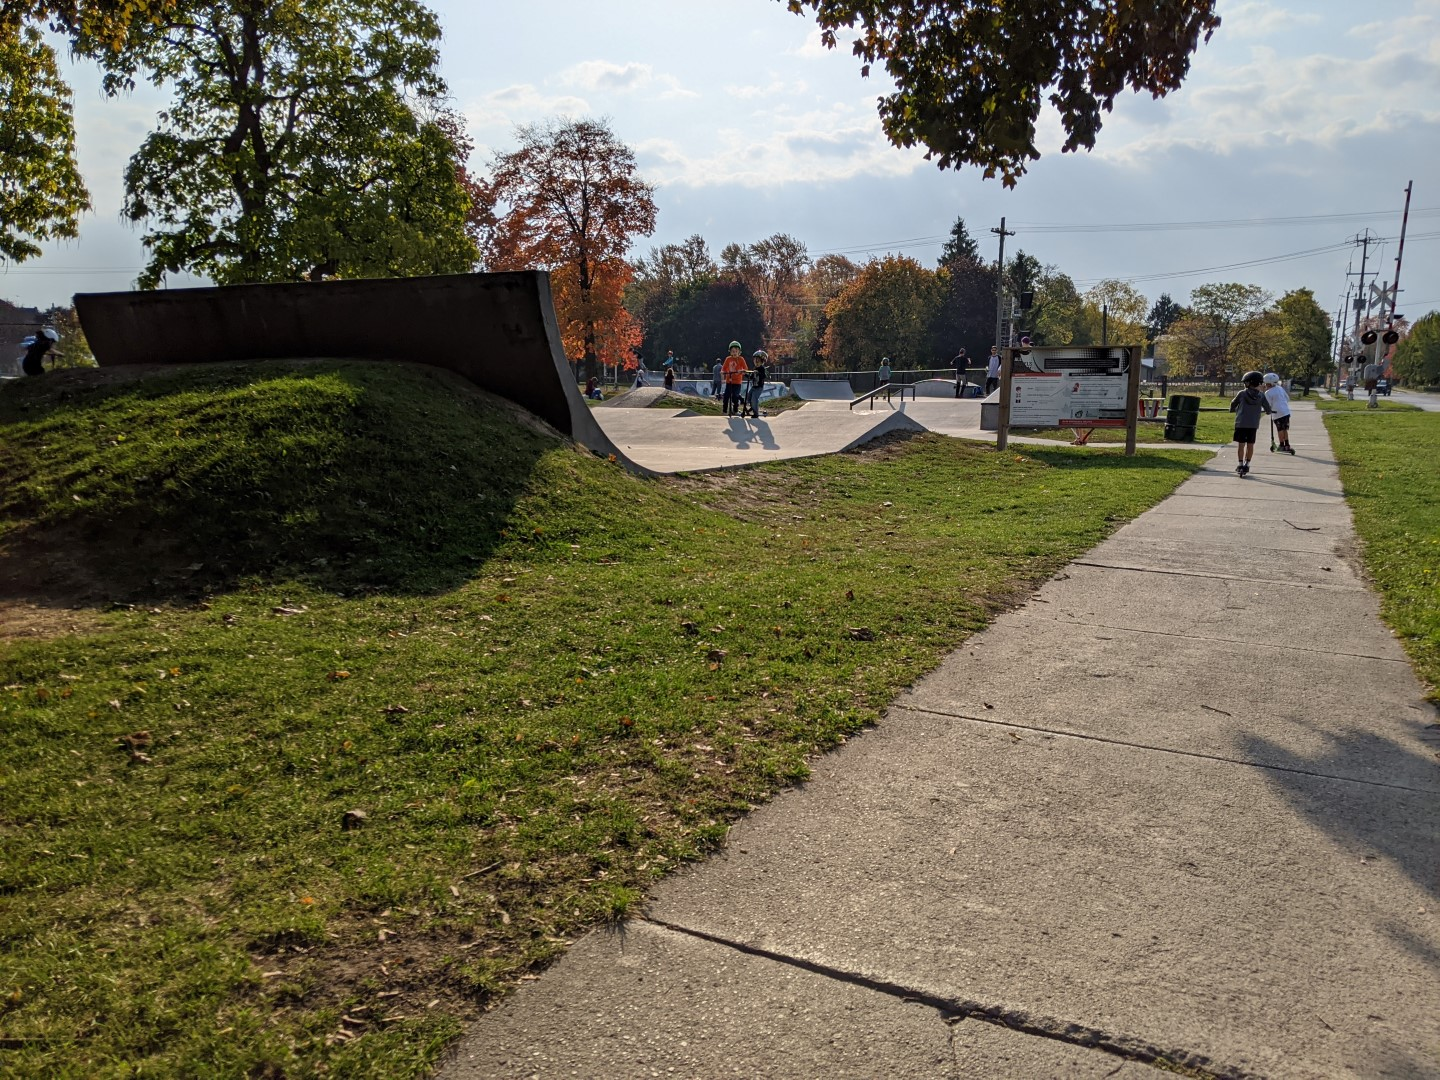 skate park in Ontario with kids